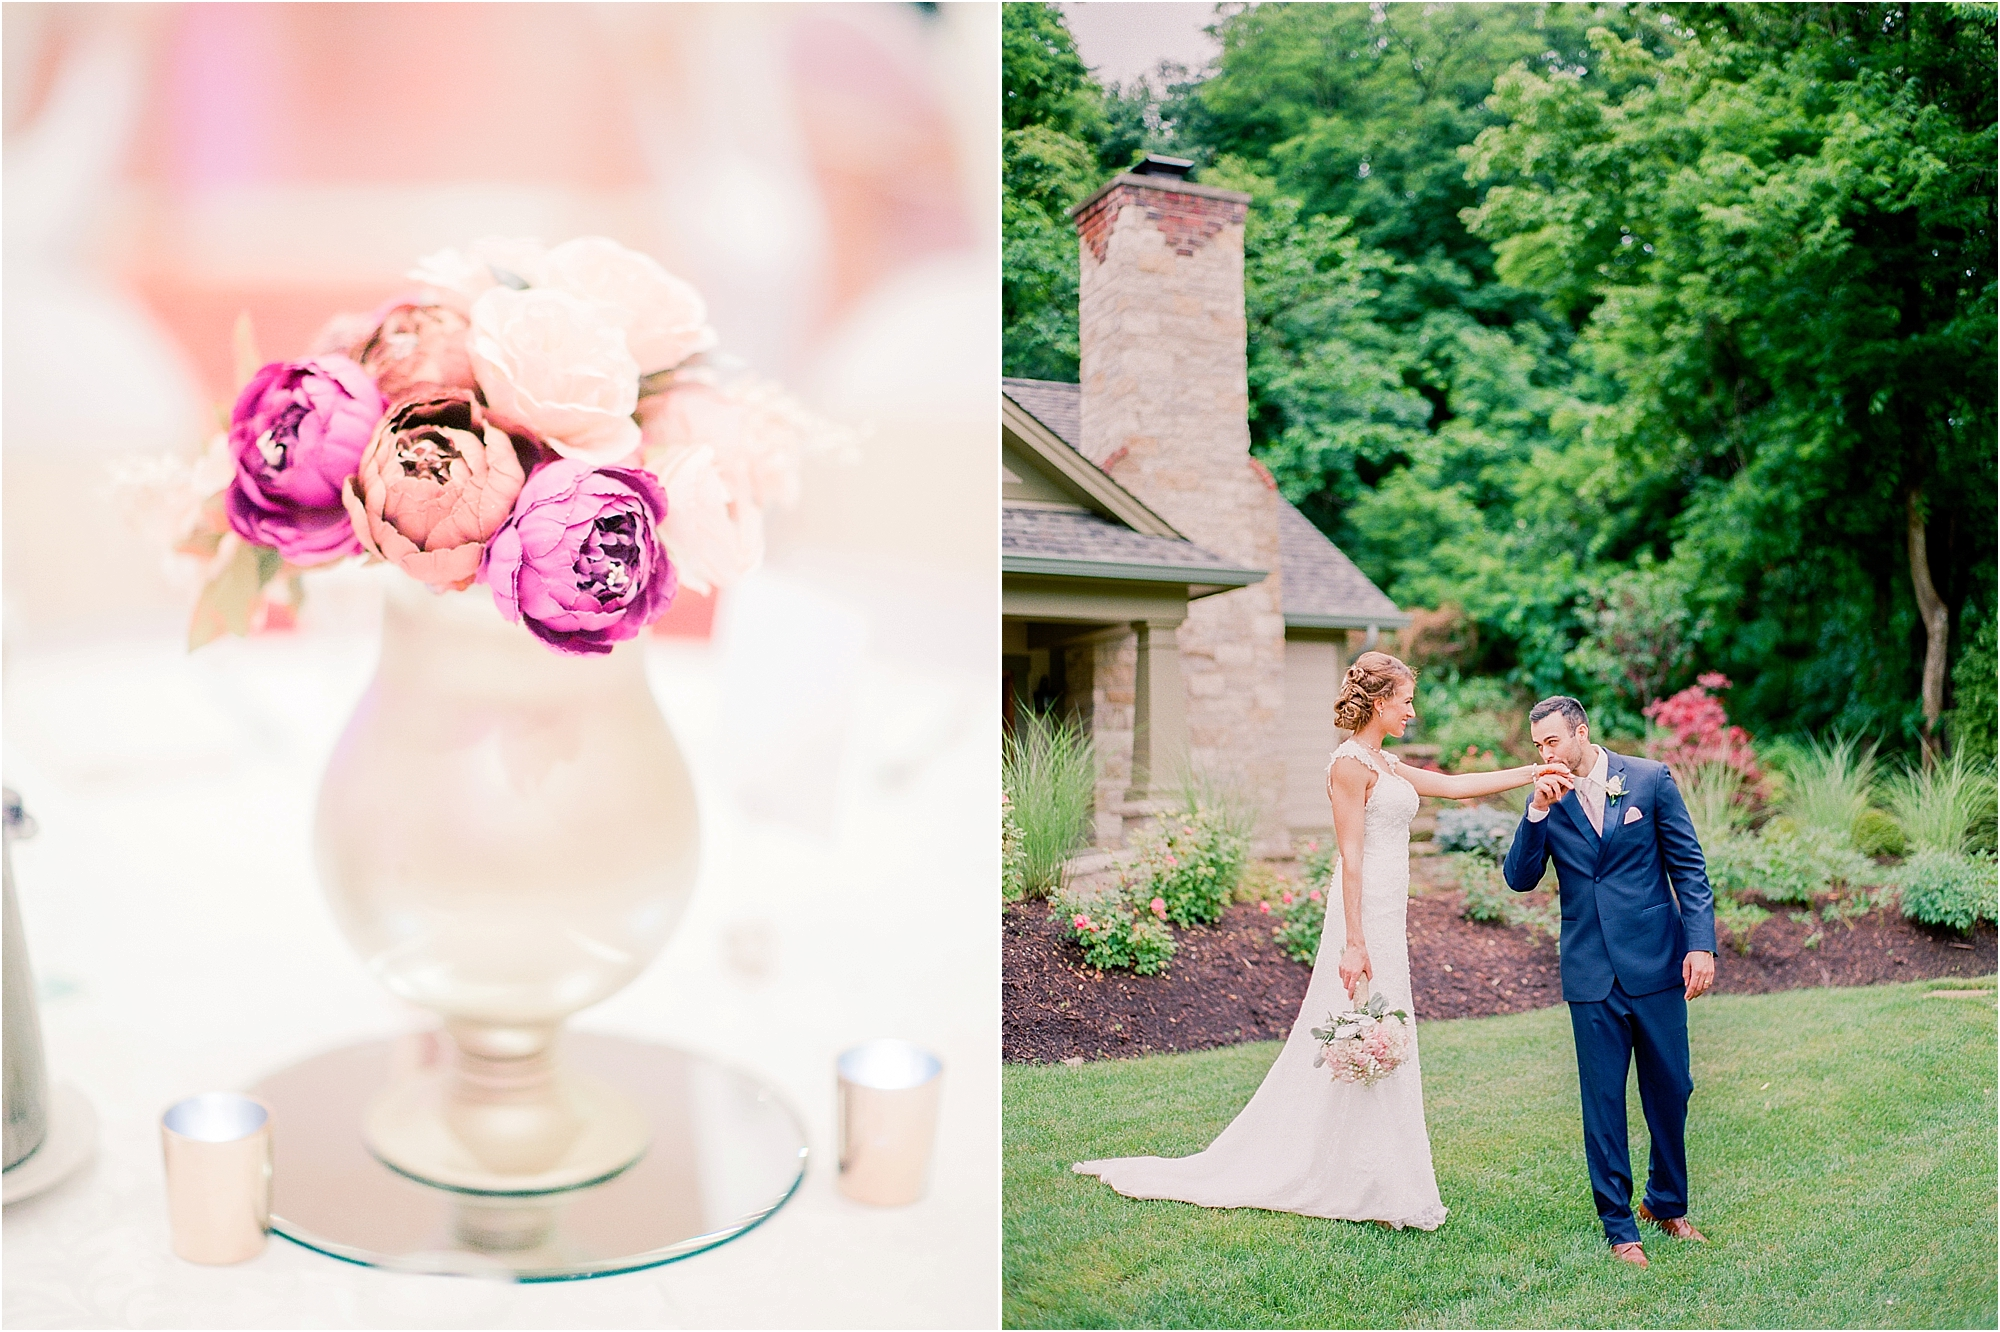 St Louis Garden Wedding by Jordan Brittley